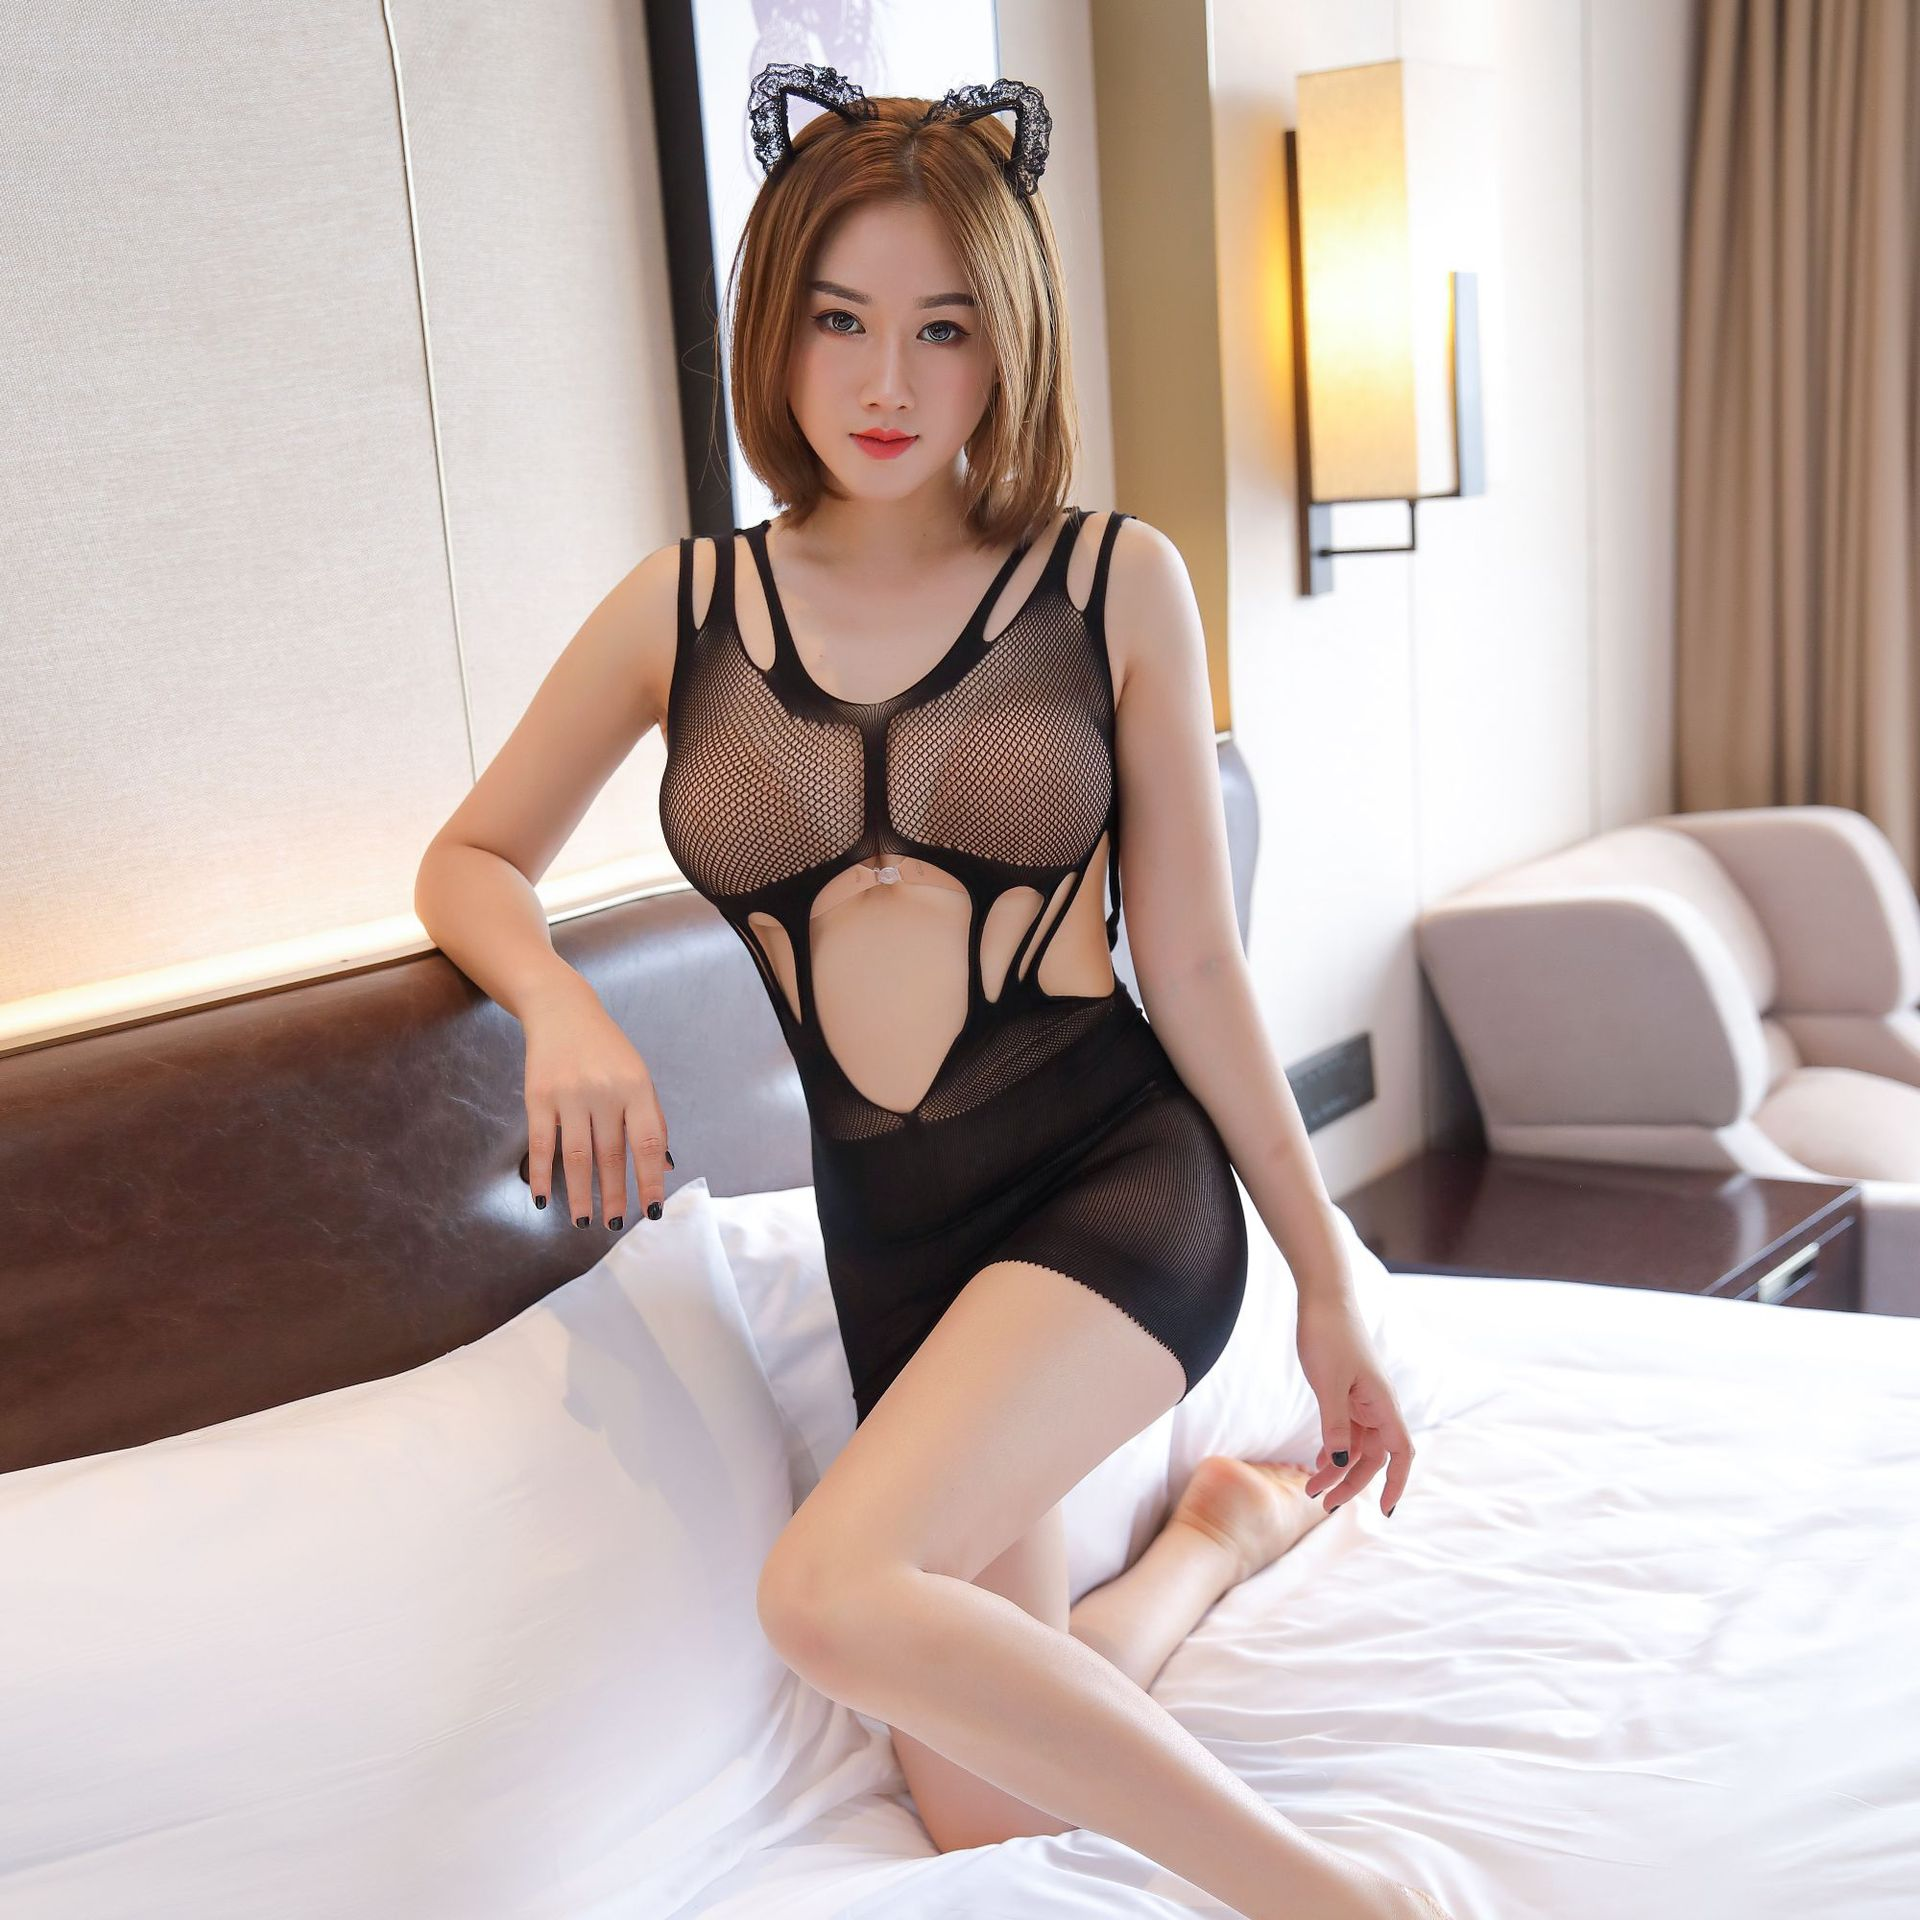 Exotic Apparel New Sexy Short Skirt Sexy Lingerie High Elastic Tight Hollow Mesh Erotic Net Dress Perspective Sling Dresses Porno Night Gown Fragrant Aroma